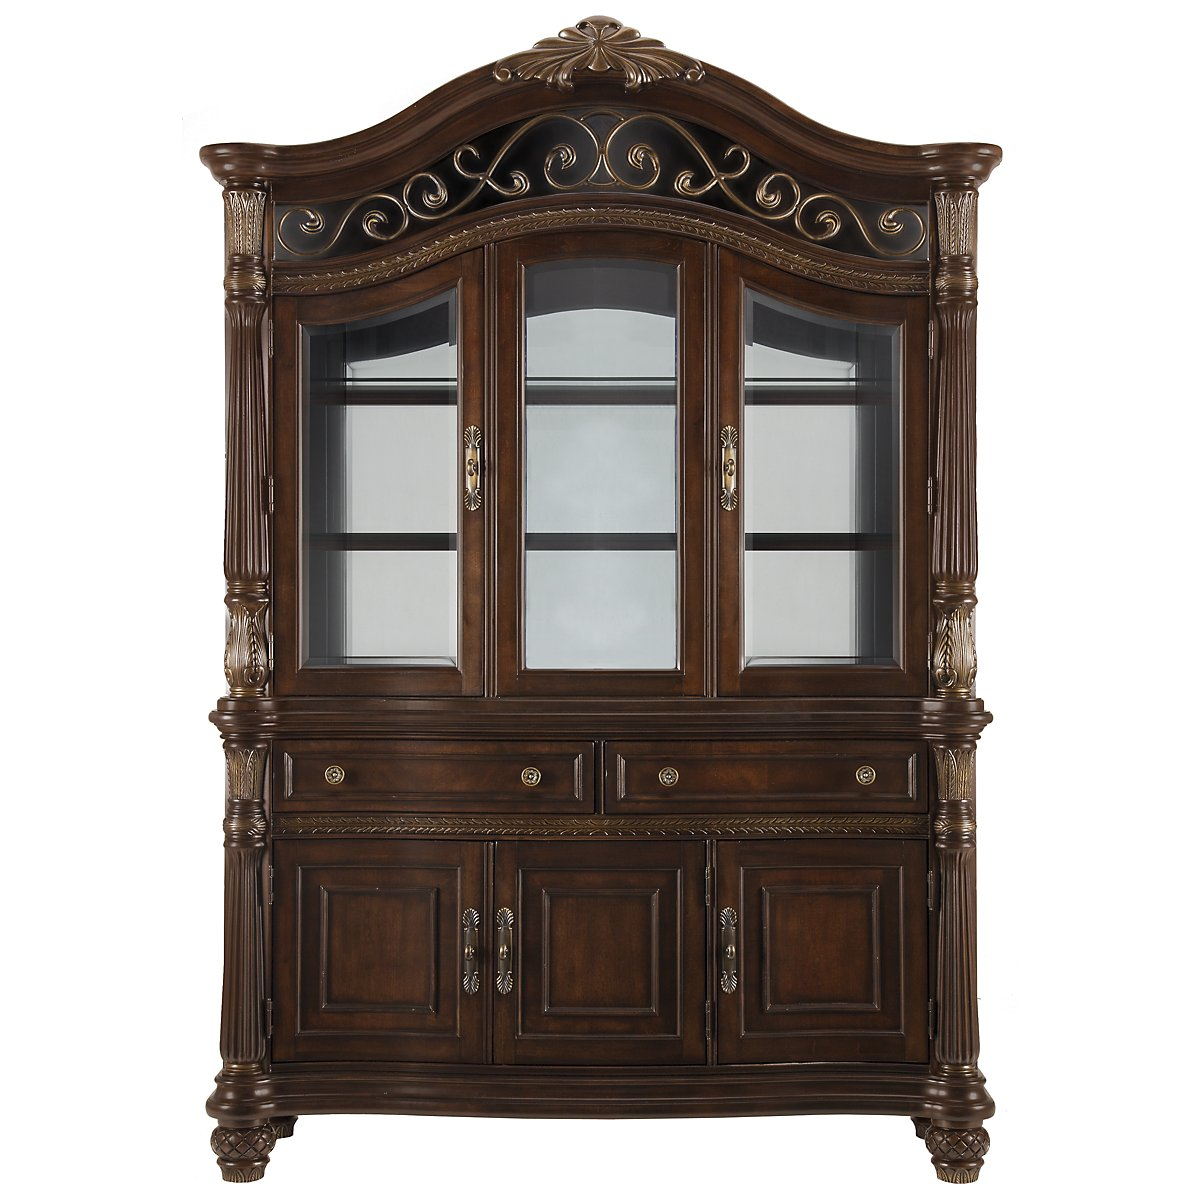 Rana Furniture Living Room City Furniture Dining Room Furniture China Cabinets